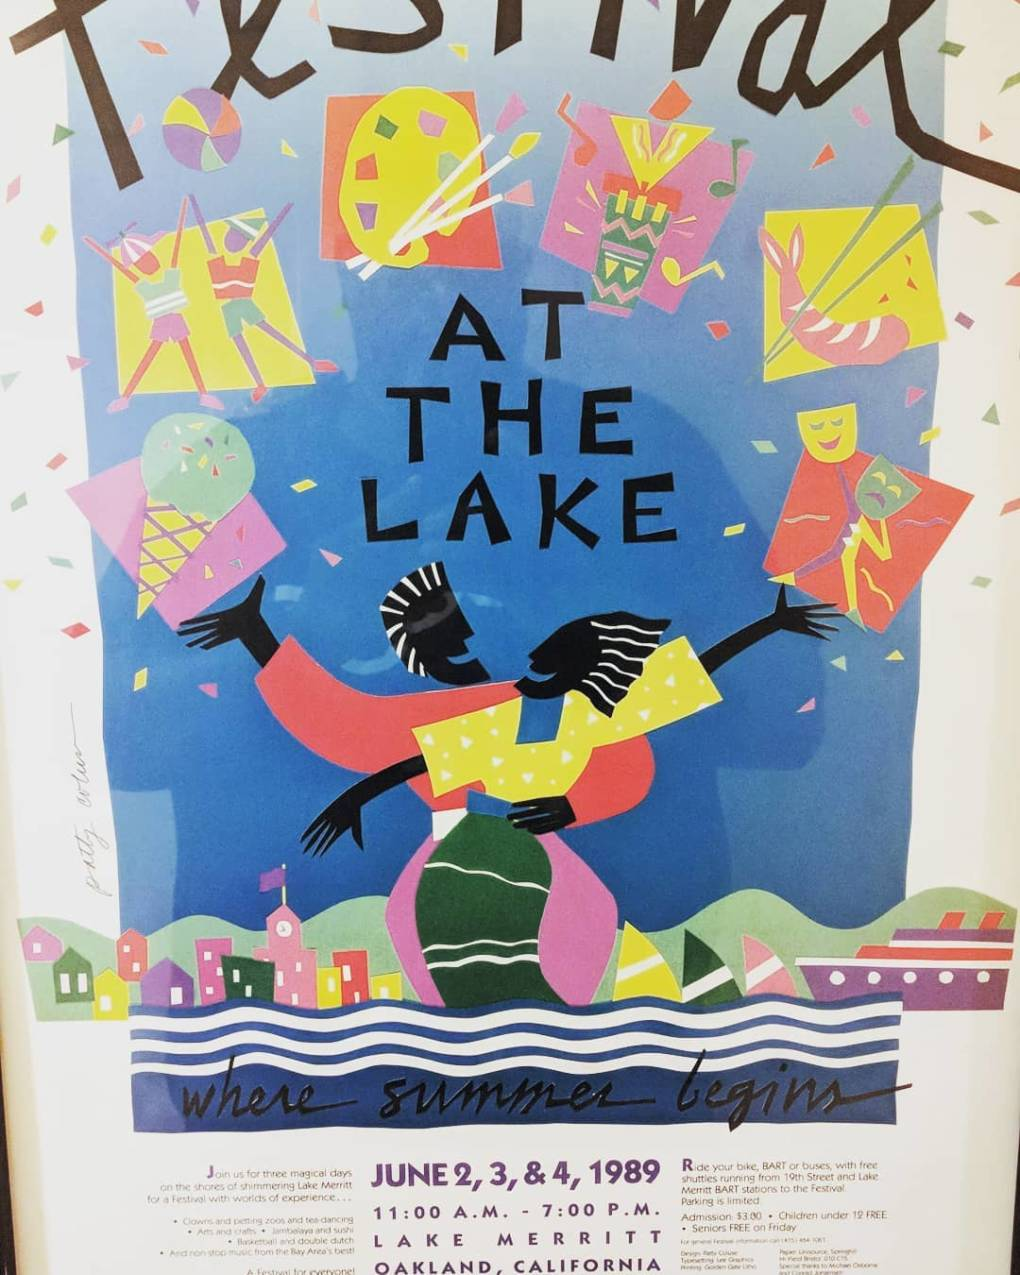 """'Member this? #RealOakland. Where the playas showed up and showed out and the women came out to do one another in they biker shorts and asymmetrical perms... BUT still family friendly really bring the kiddies out,"" writes @antmooak in an Instagram post about the Festival at the Lake."